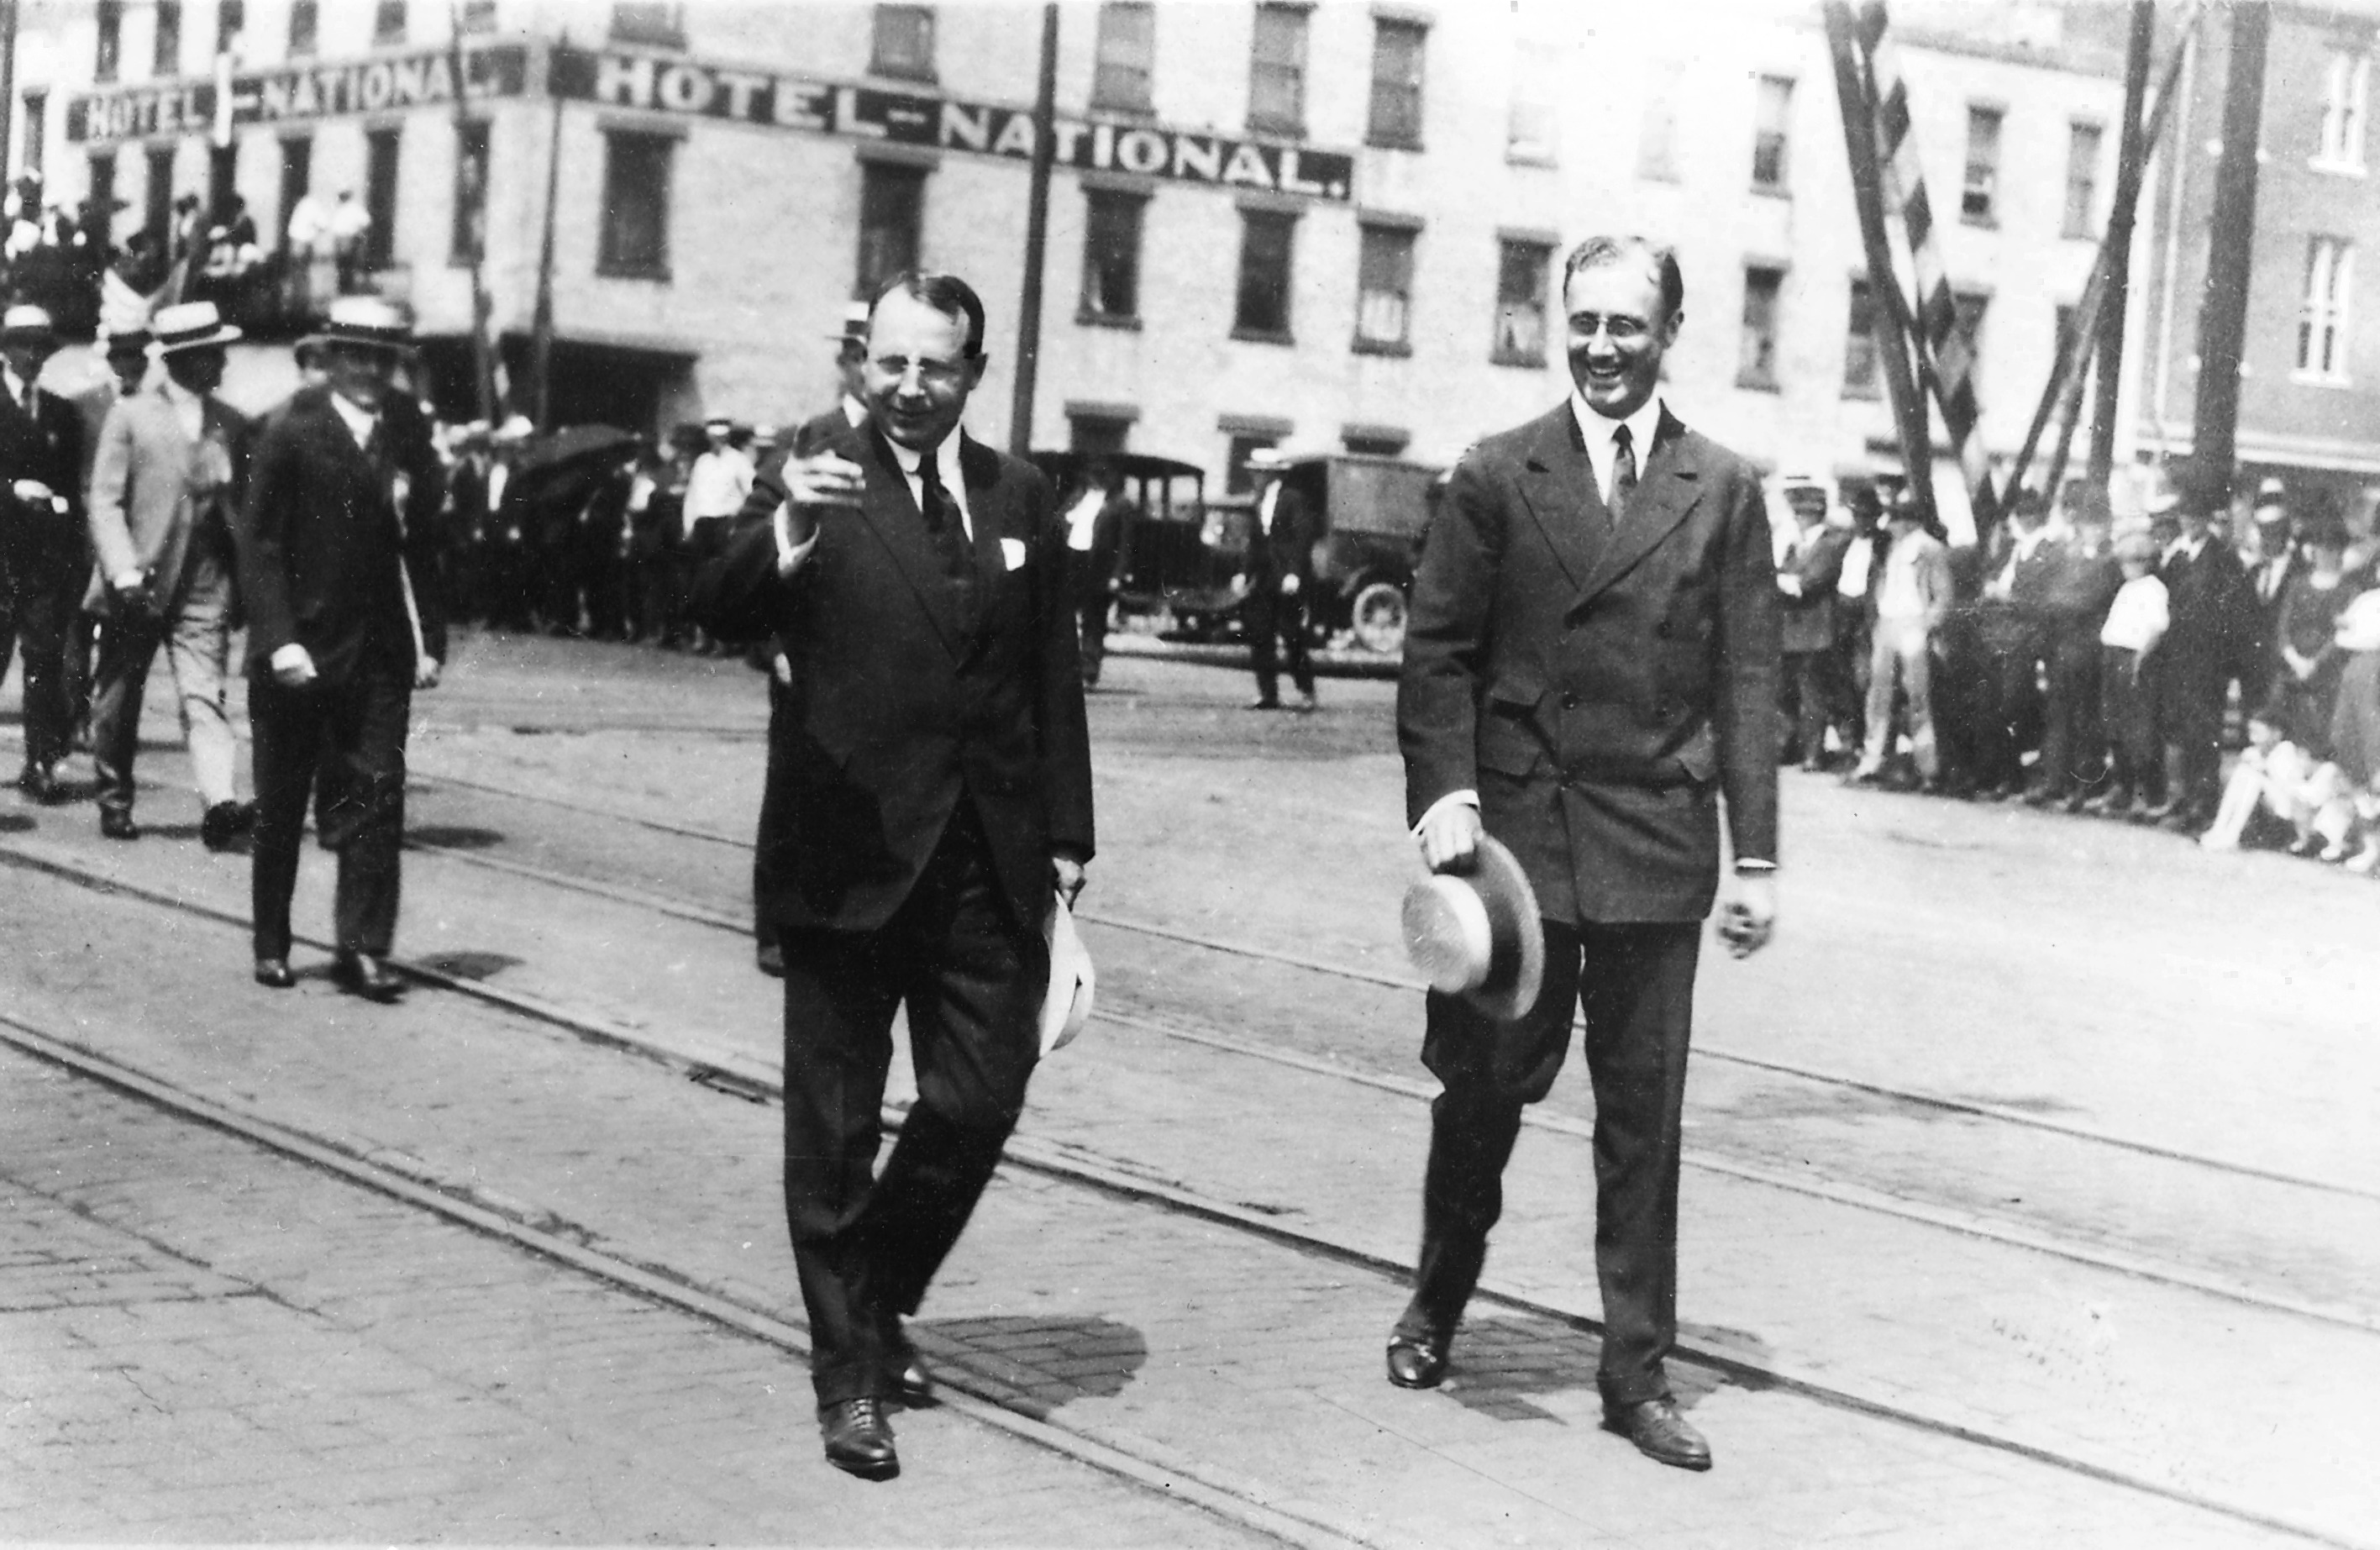 Franklin D. Roosevelt and James Cox campaigning in Dayton, Ohio, August 7, 1920.